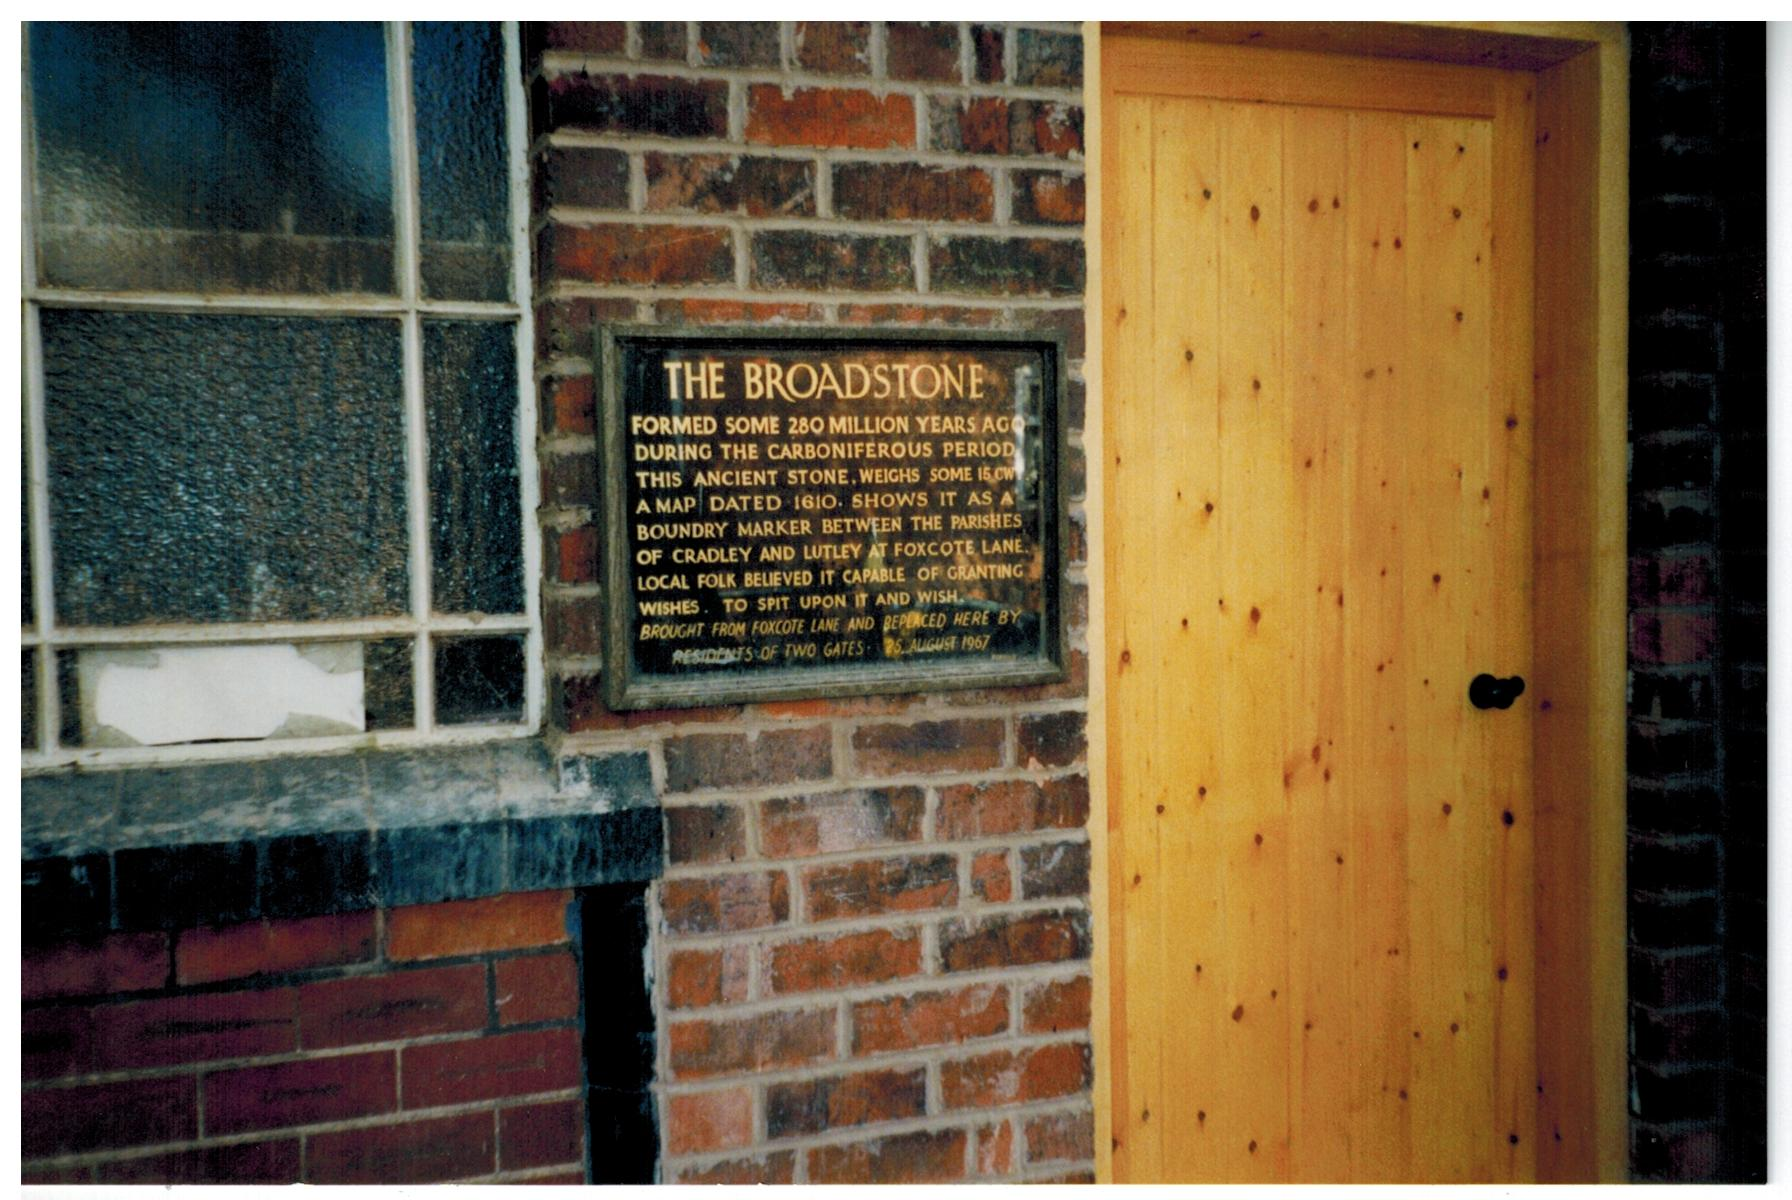 B160 Broadstone plaque